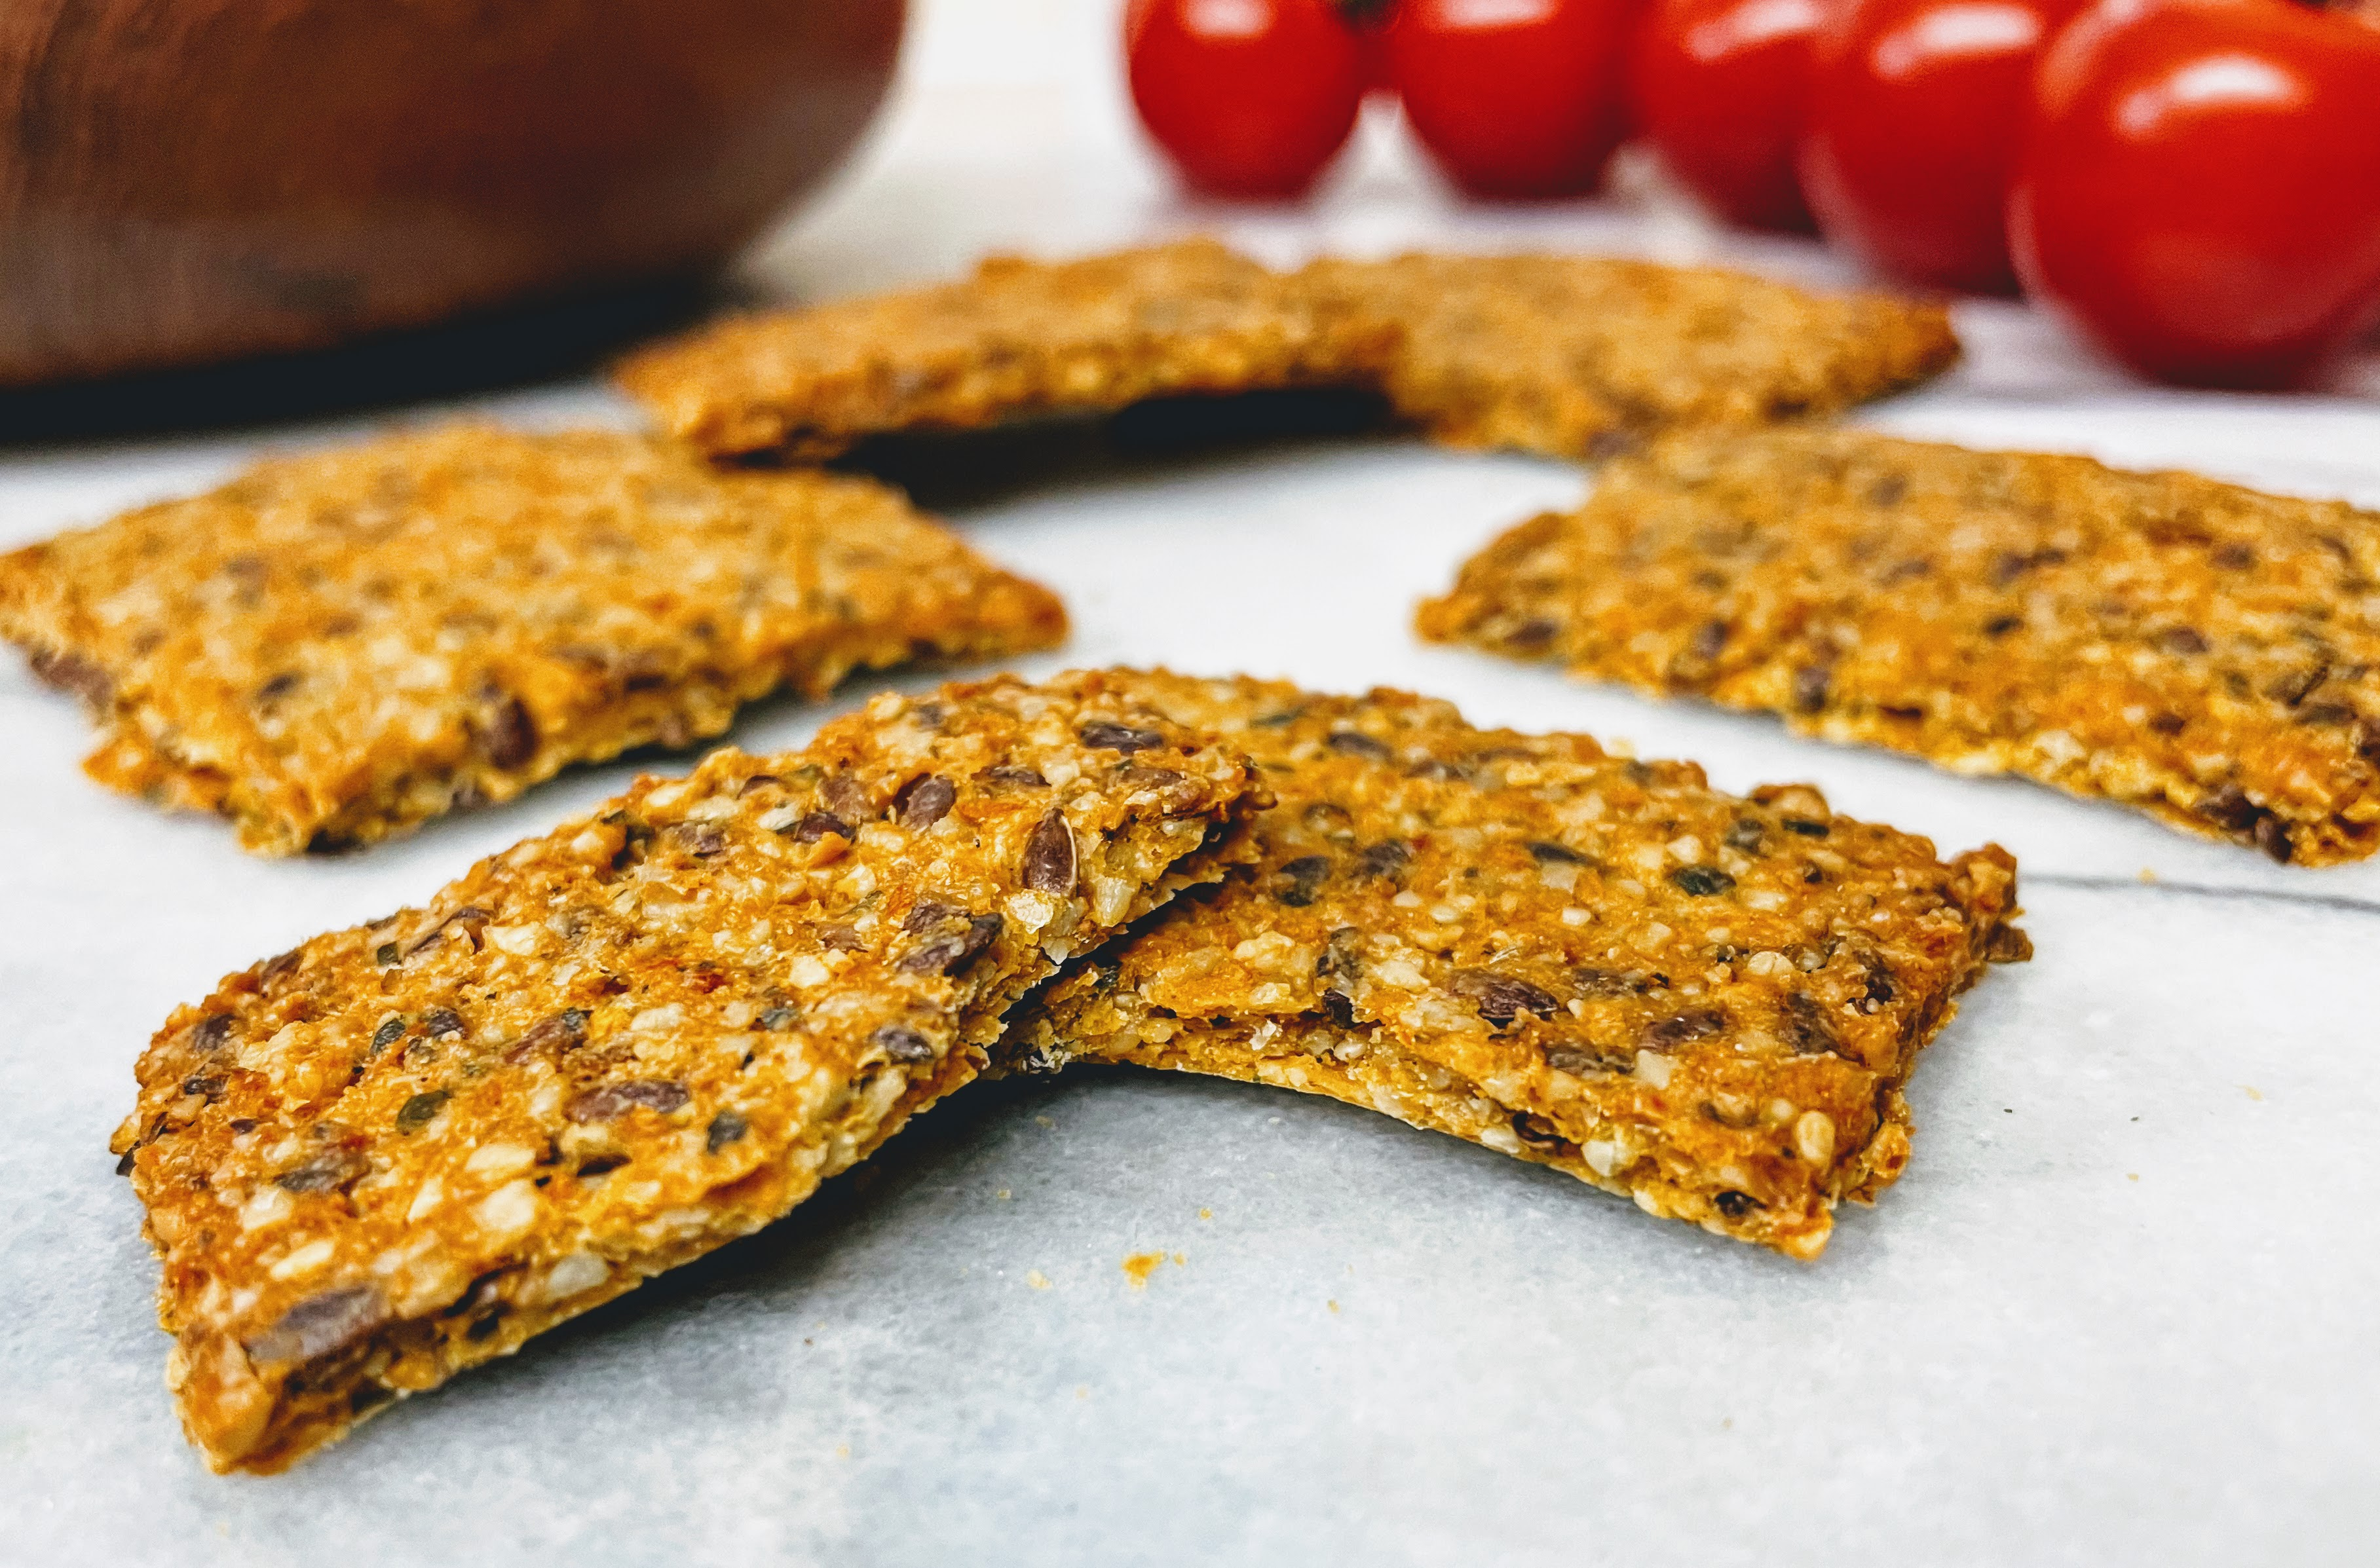 A closer view of a sun-dried tomato cracker snapped in half. The crackers are super thin and a little flaky, with chopped seeds and a few brown flax seeds left whole.